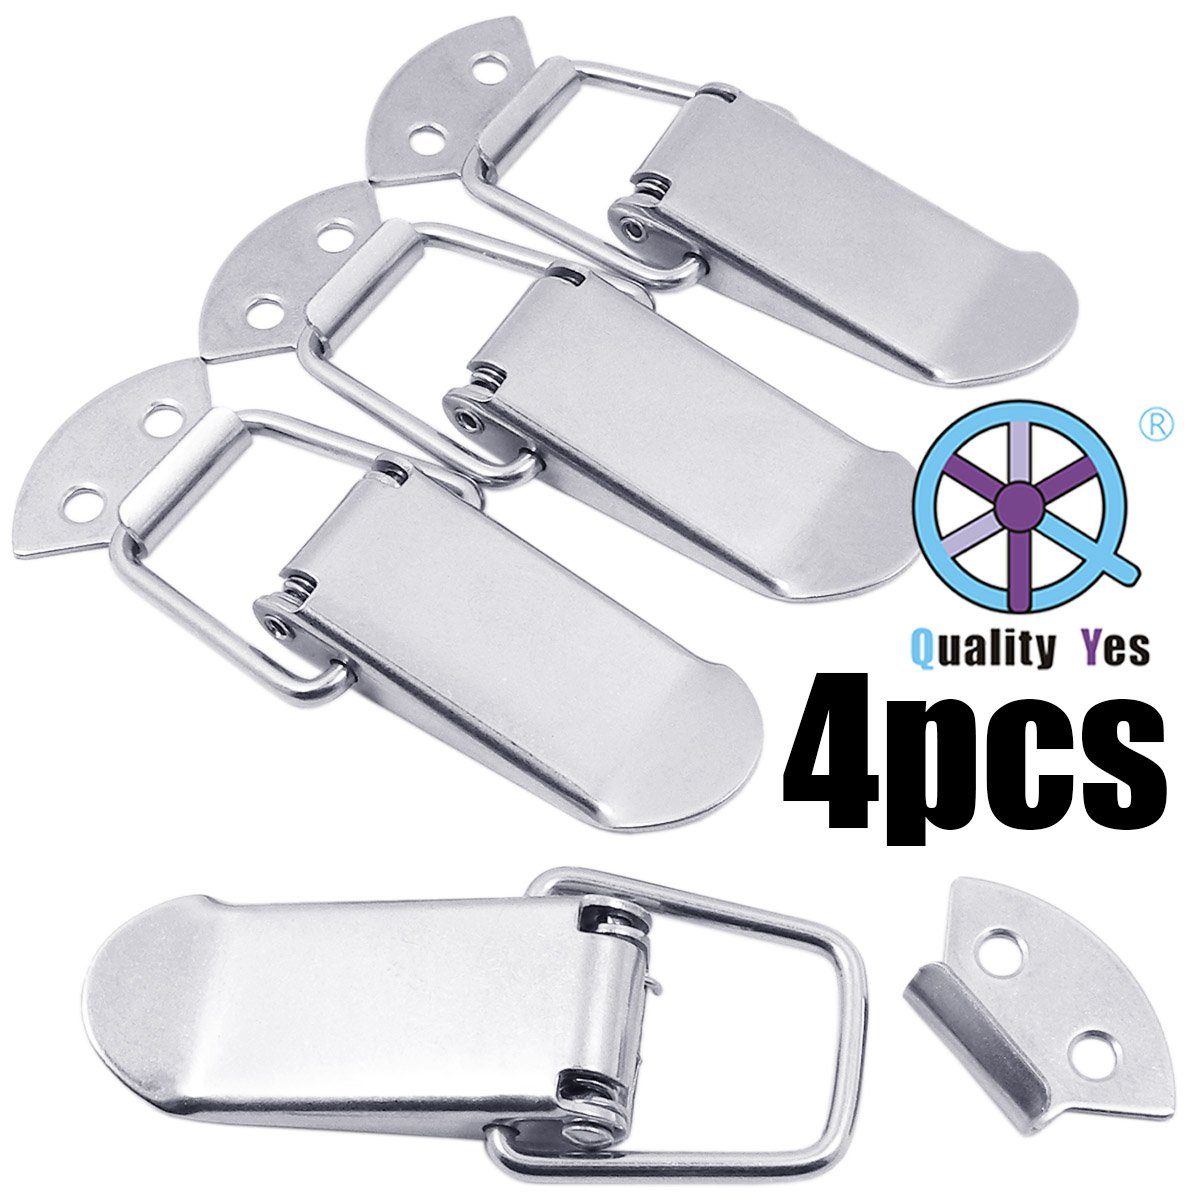 QY 4Set 304 Stainless Steel Cabinet Spring Loaded Toggle Clamps Box Clasp Buckle Trunk Catches Latch Hasp for DIY Chest Project